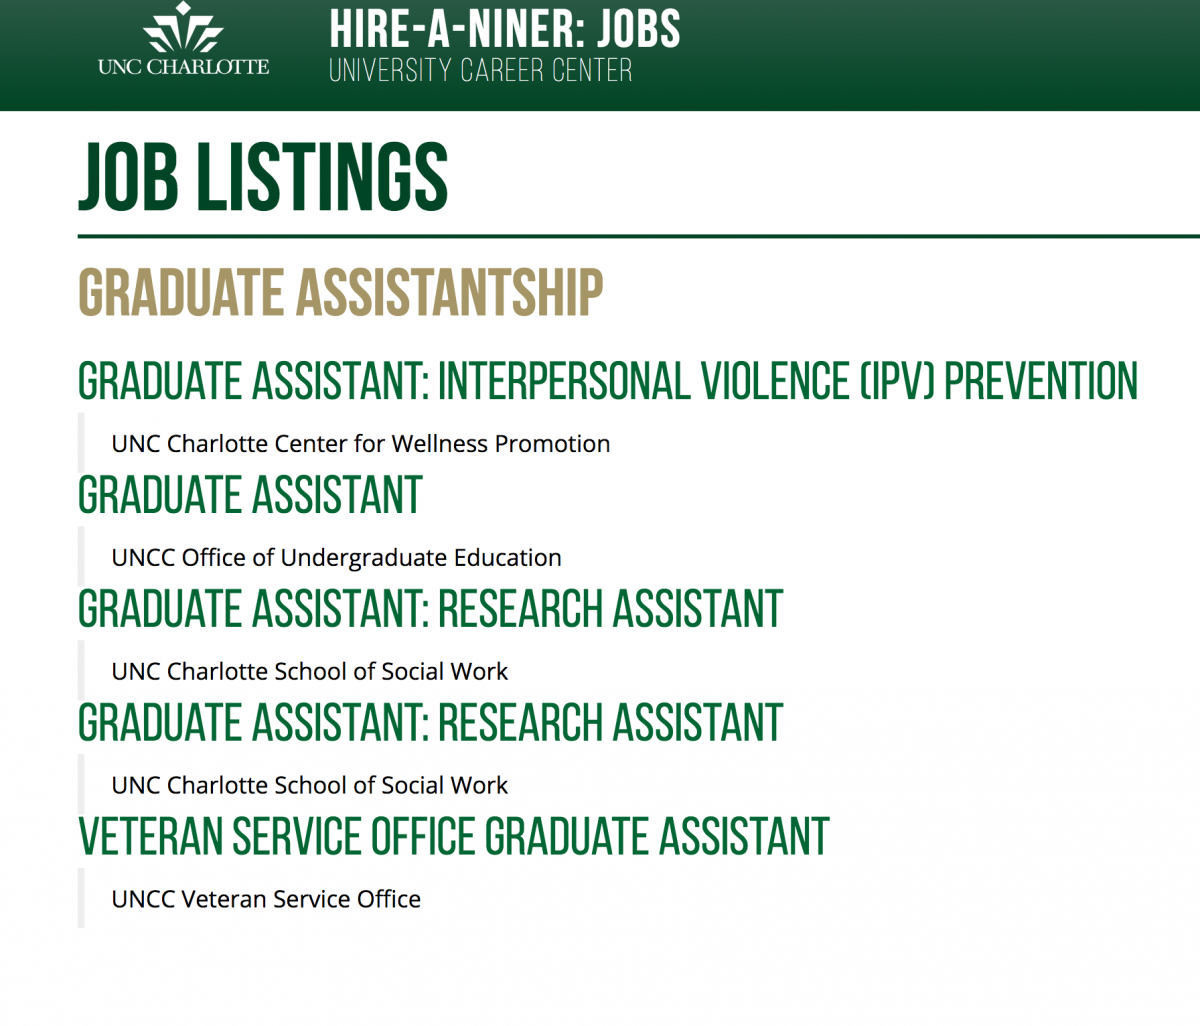 Search Hire-A-Niner for Assistantships